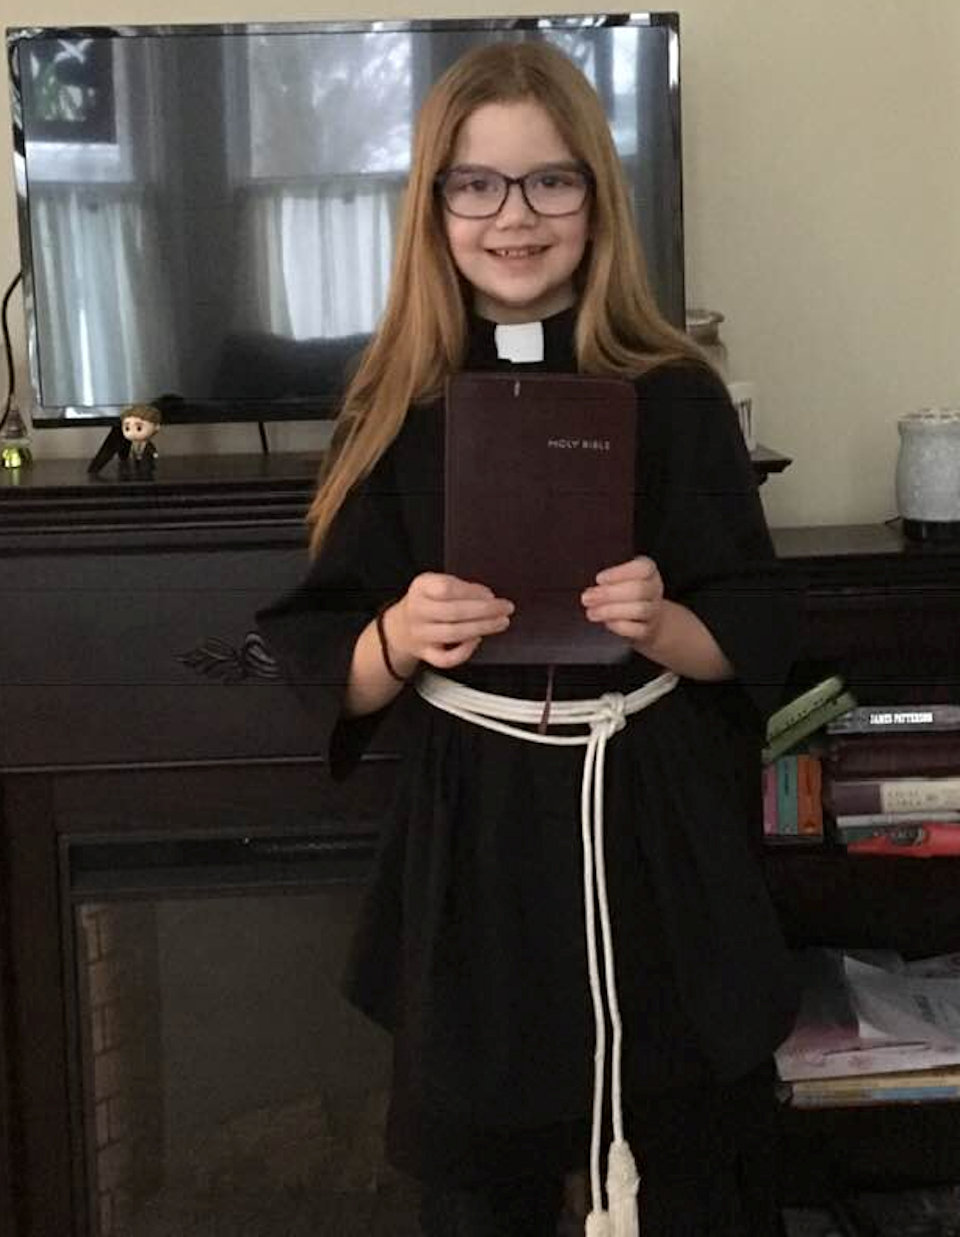 Child dressing as a Deacon